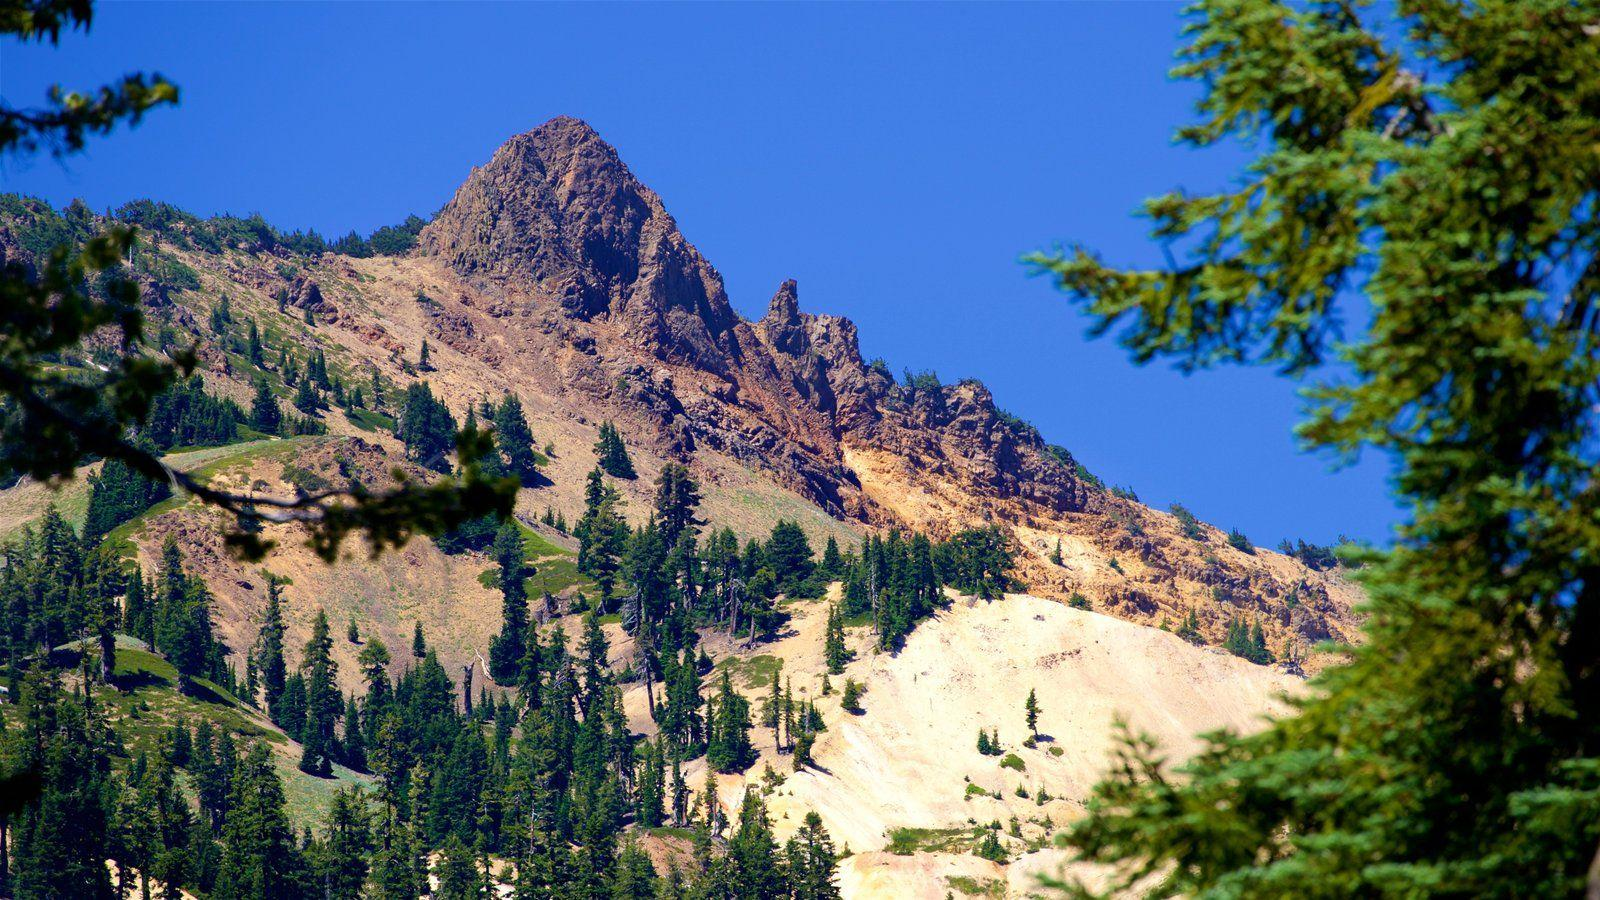 Mountain Pictures: View Images of Lassen Volcanic National Park